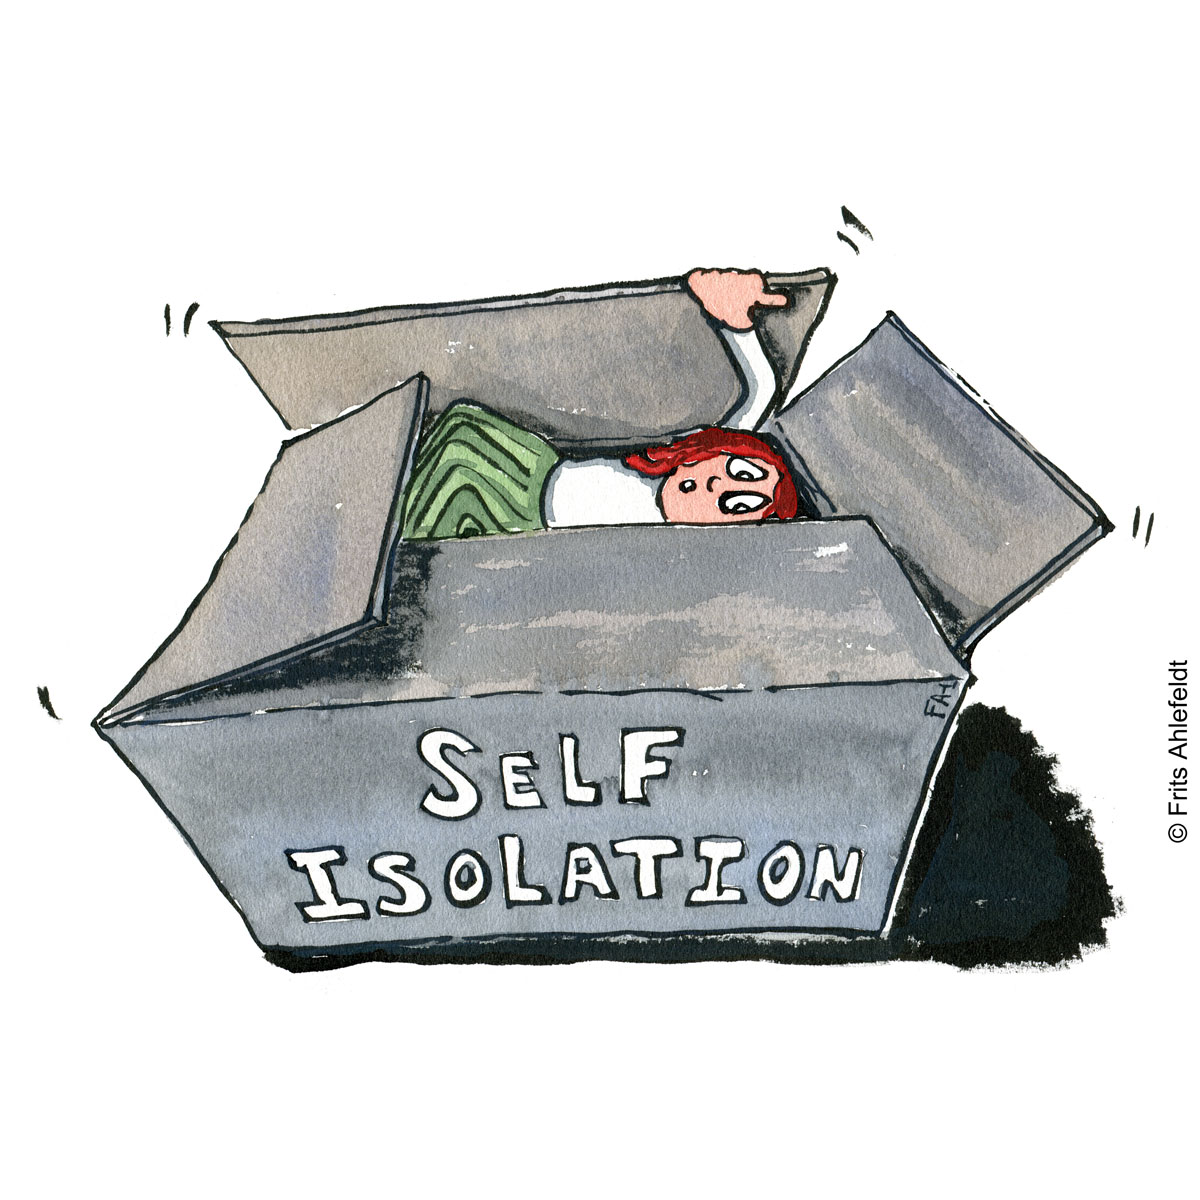 Illustration of person going into a cardbox like container with self-isolation written on it. Drawn journalism drawing by Frits Ahlefeldt